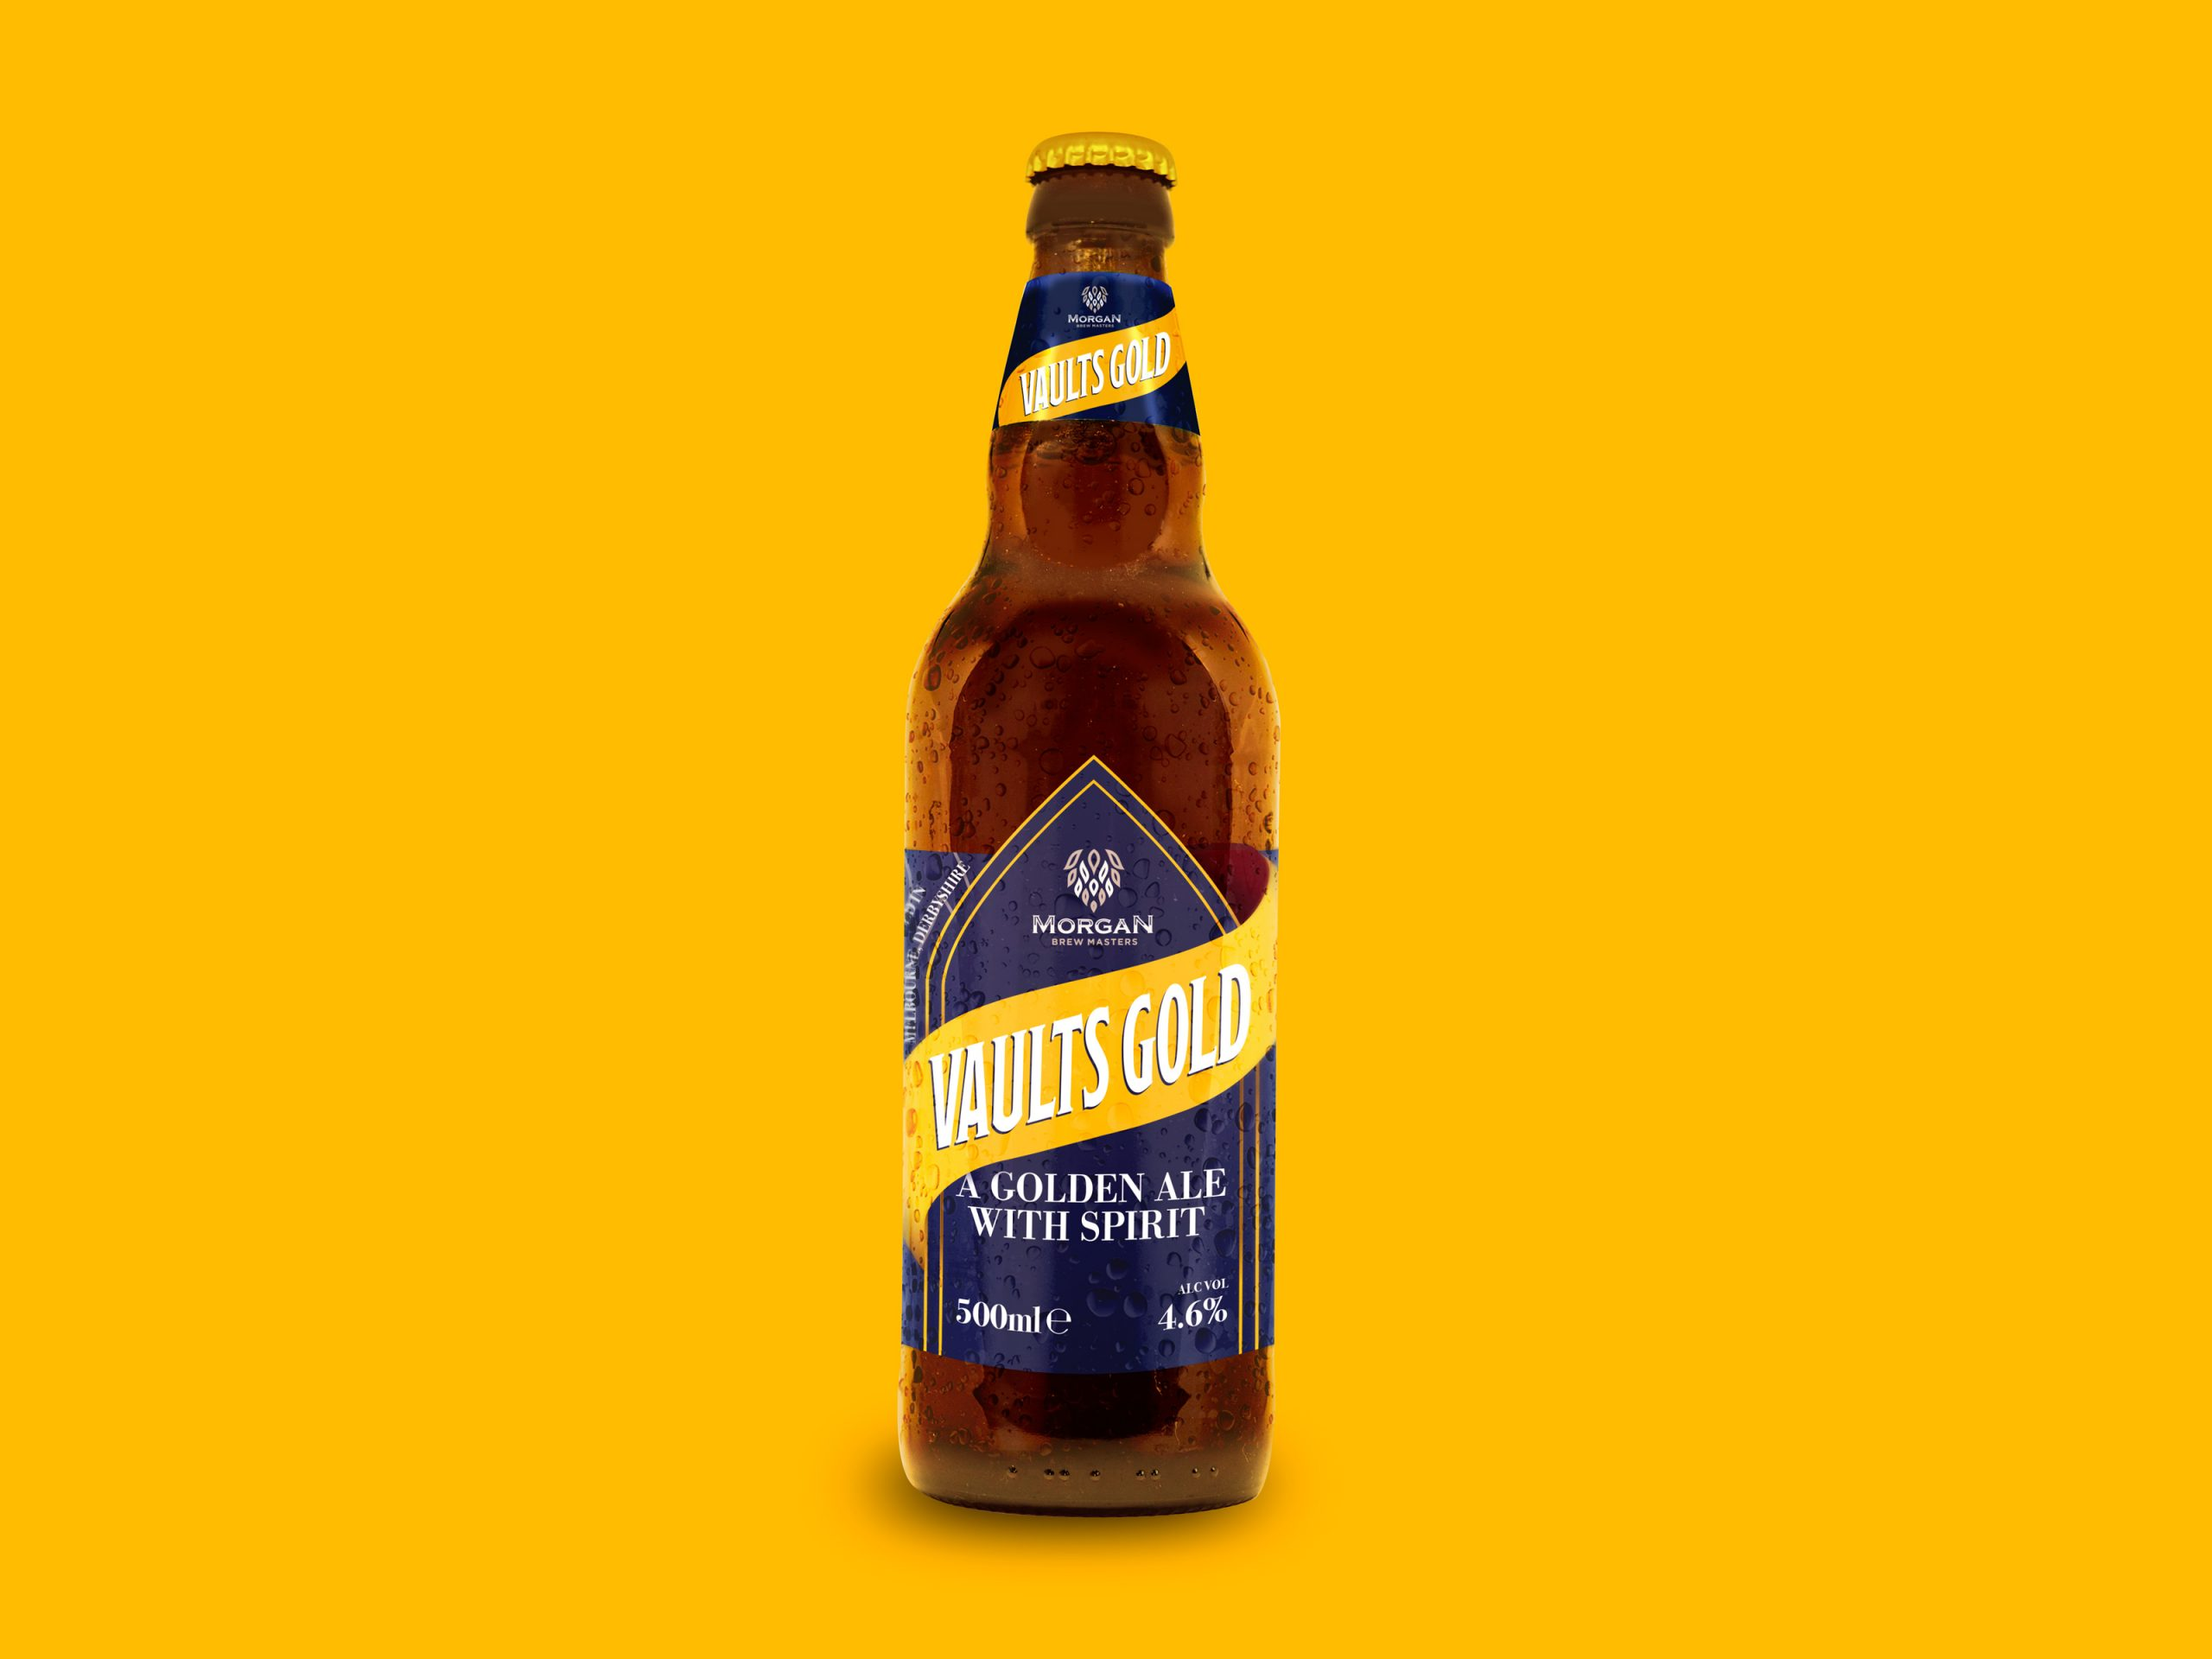 Vaults Gold Beer Bottle